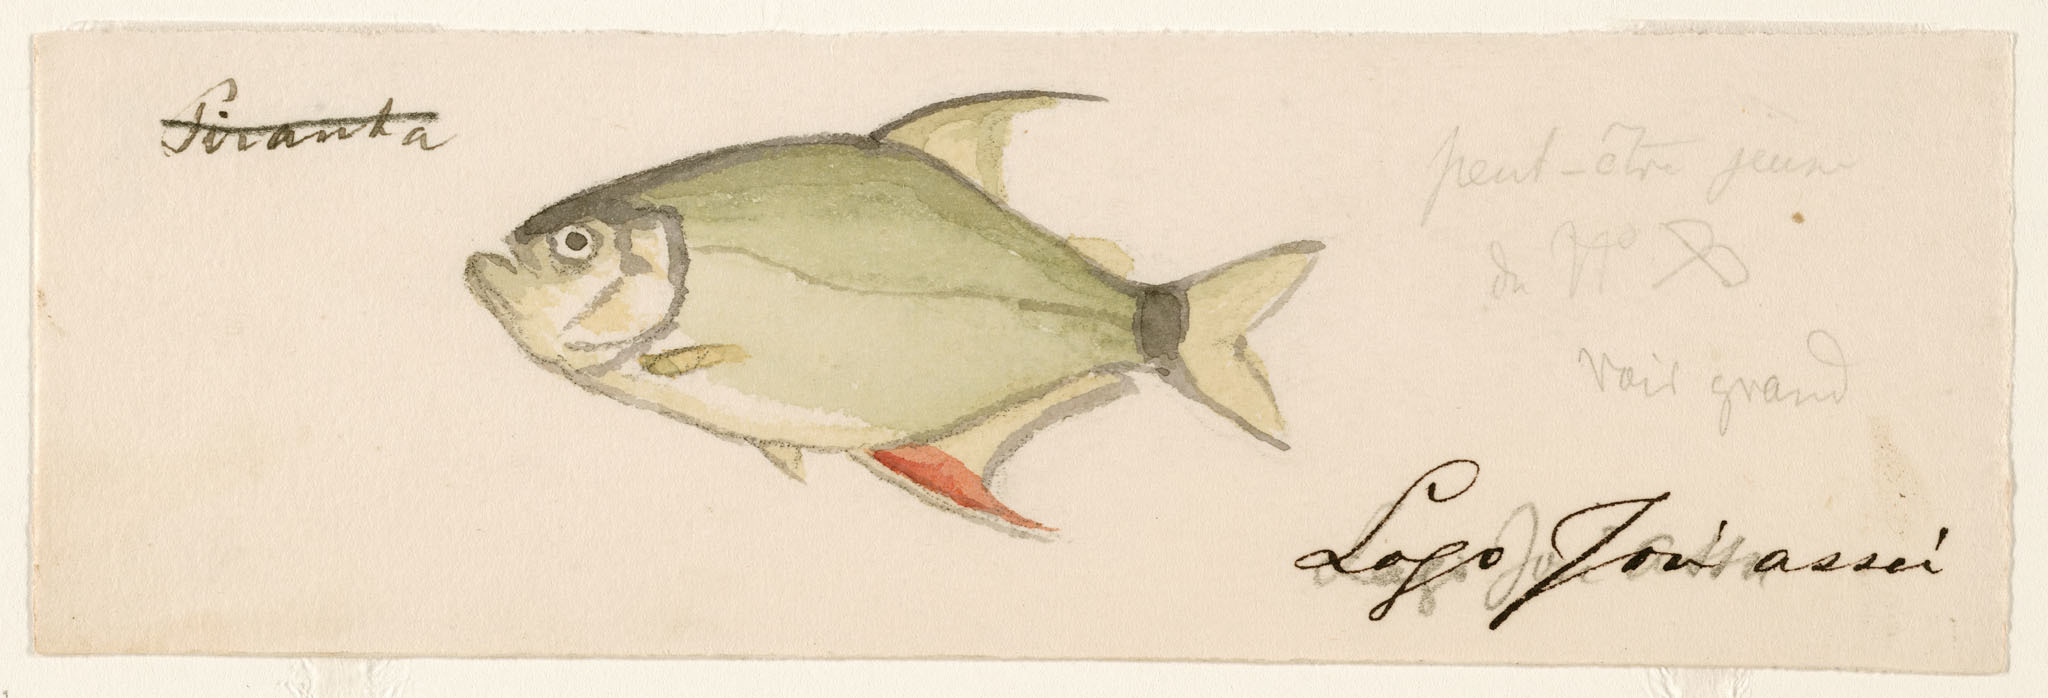 Image of Wimple piranha